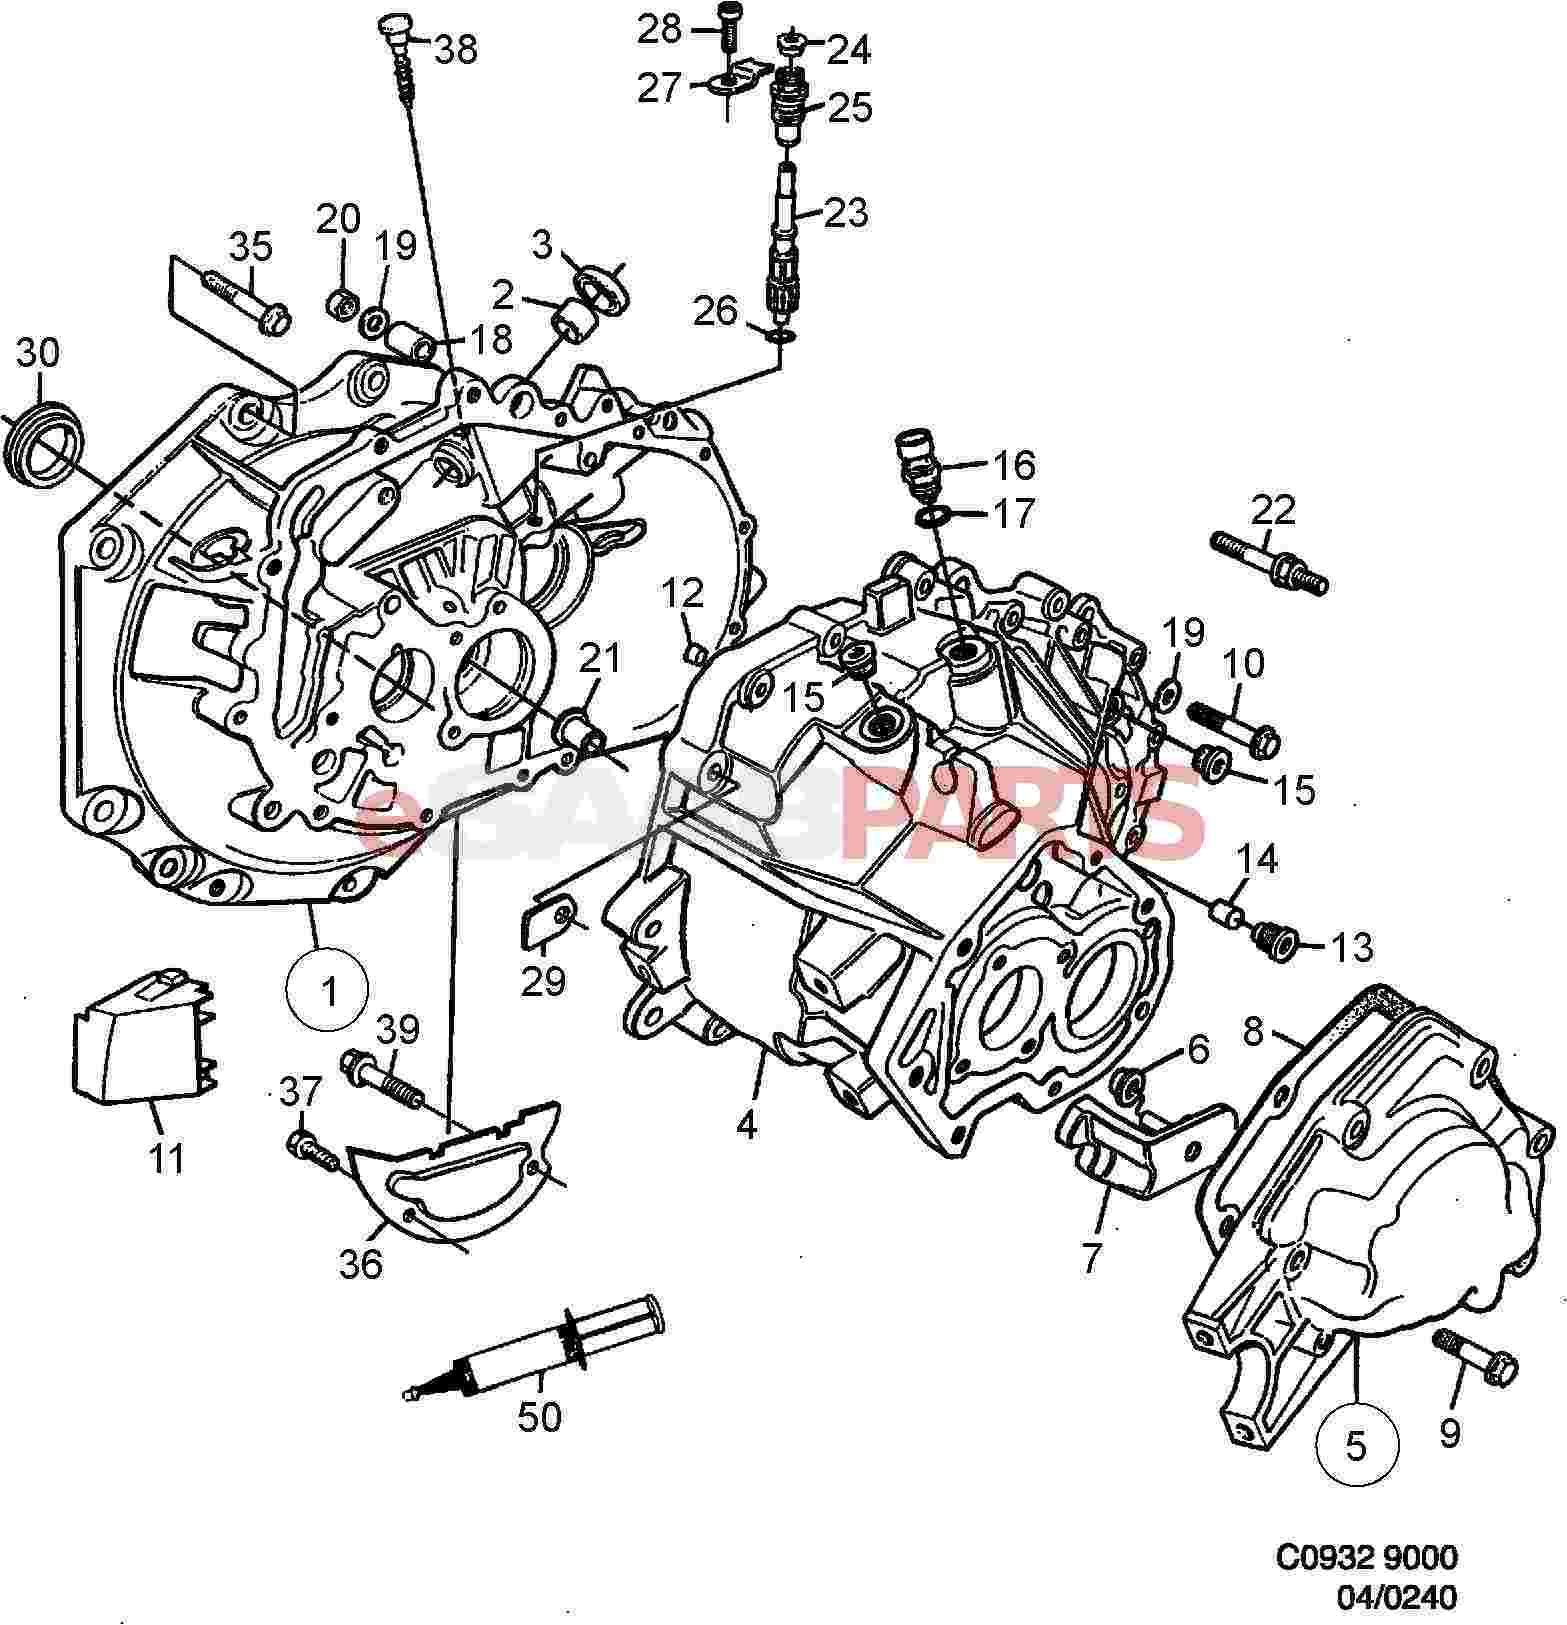 Acura Rl 3 5 Engine Diagram Vacuum. Acura. Auto Wiring Diagram